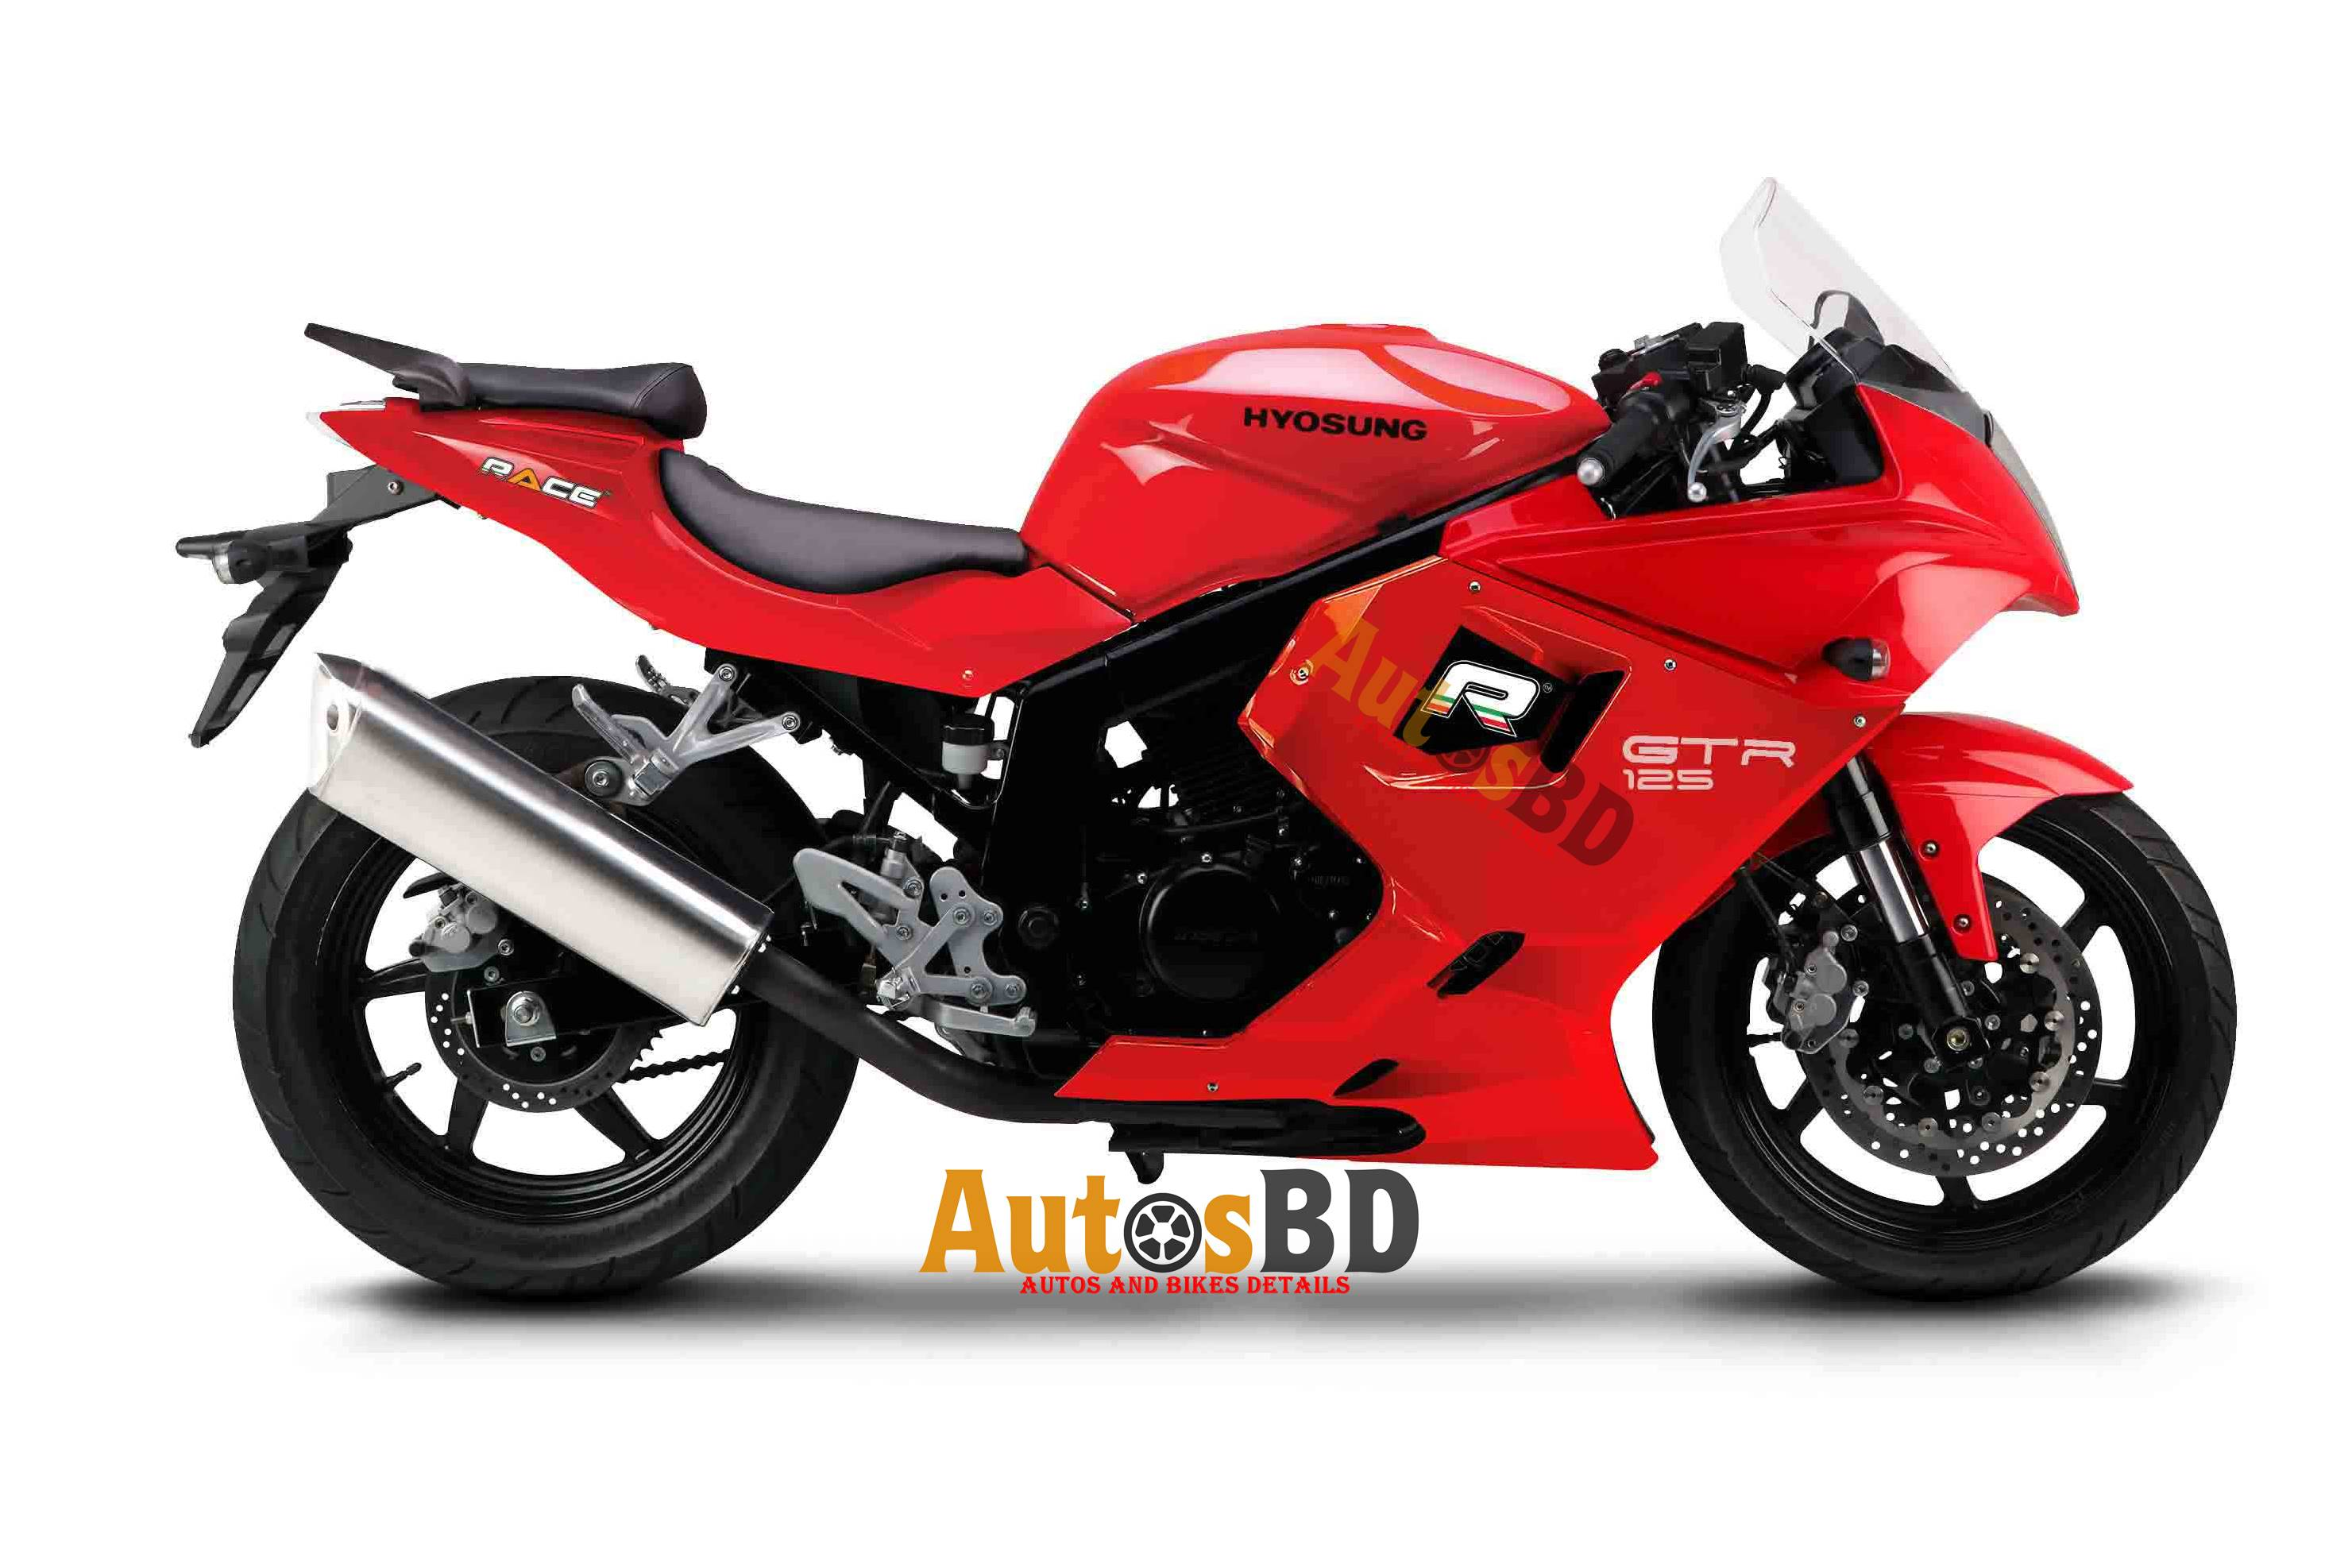 Race Hyosung GTR 125 Specification